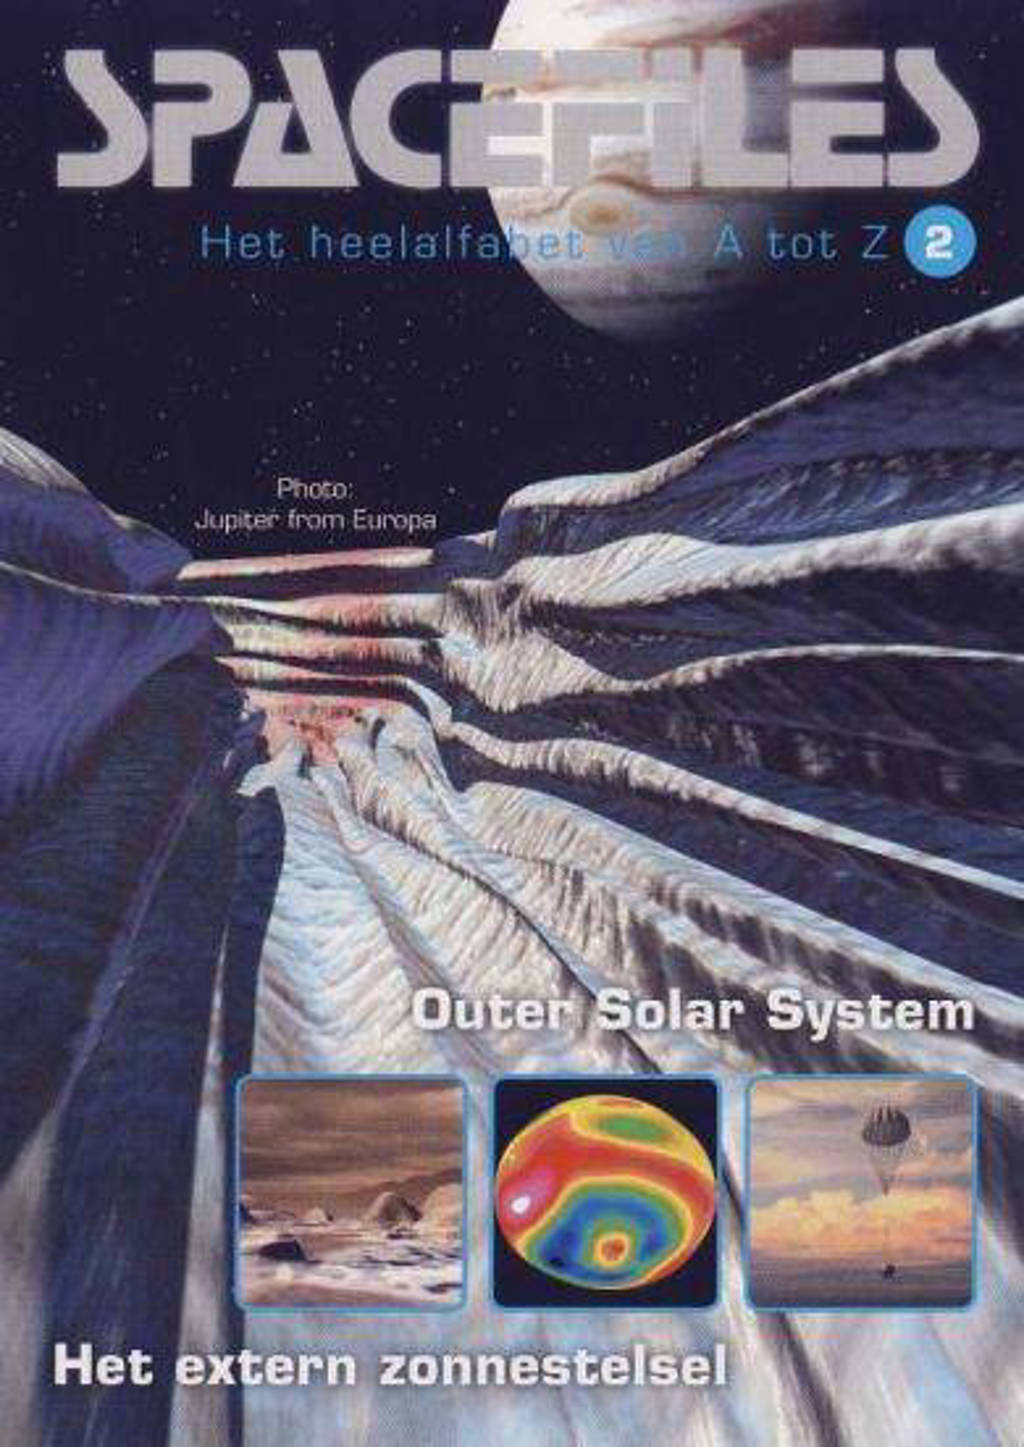 Space files - outer solar system (DVD)